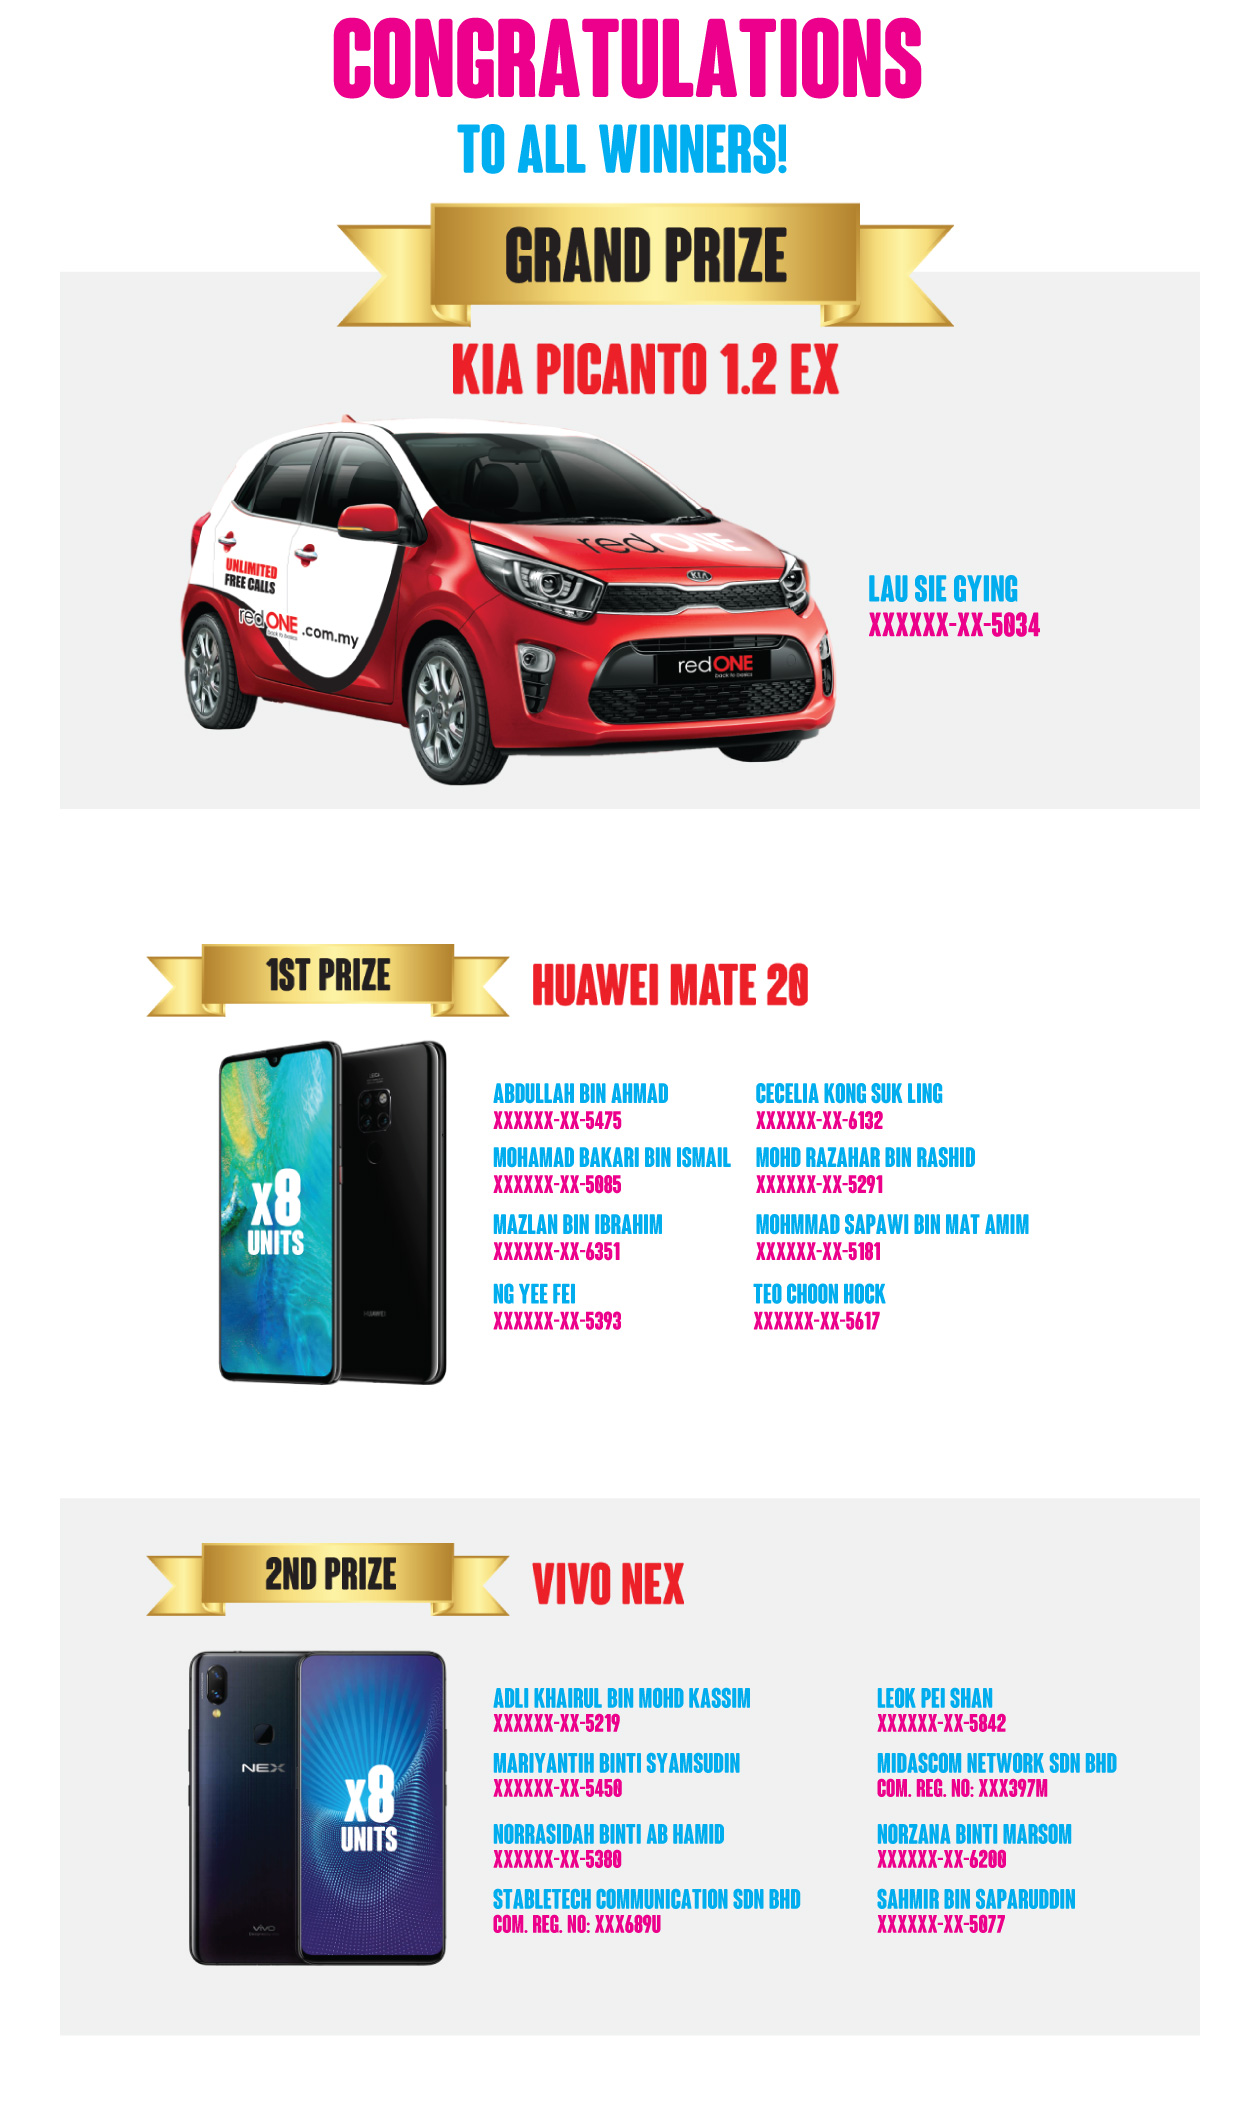 CONGRATULATIONS TO ALL WINNERS! GRAND PRIZE KIA PICANTO 1.2 EX, 1st Prize HUAWEI MATE 20, 2nd Prize VIVO NEX